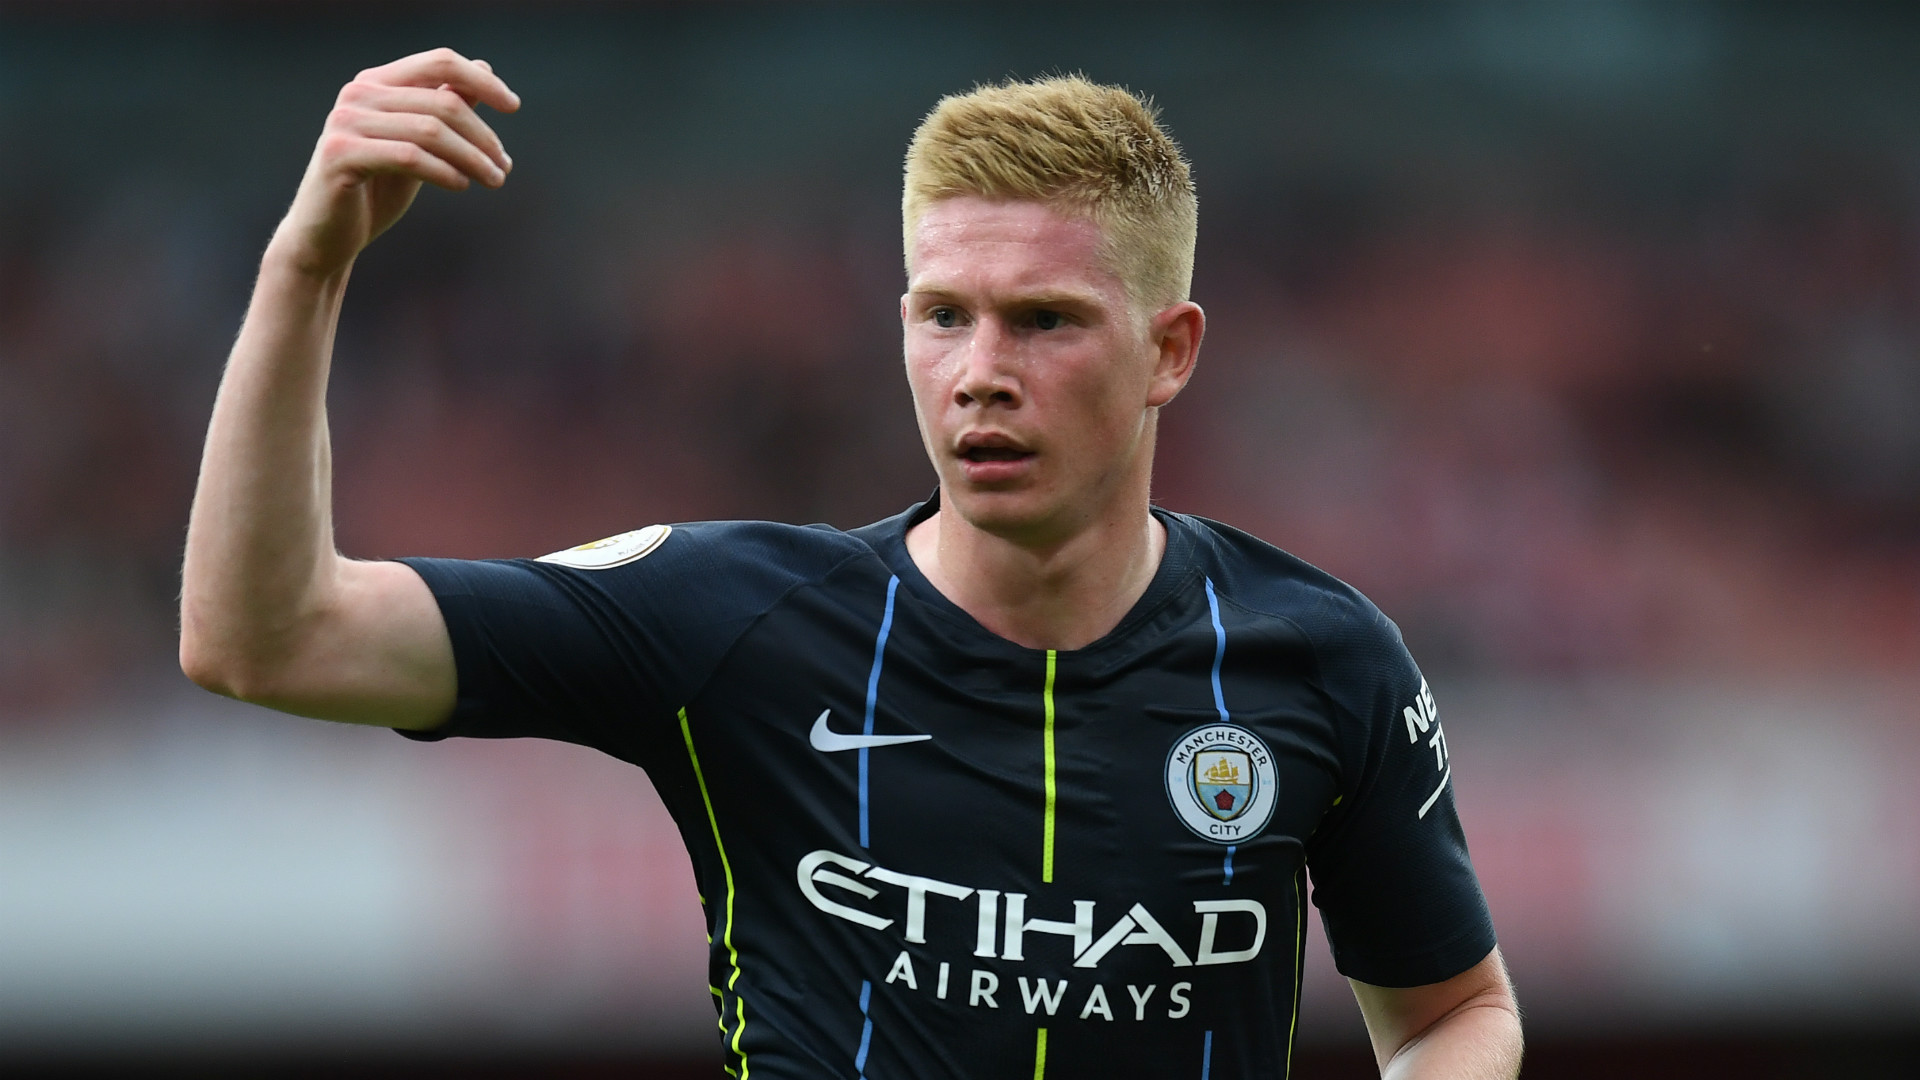 Man City MF De Bruyne injured in training